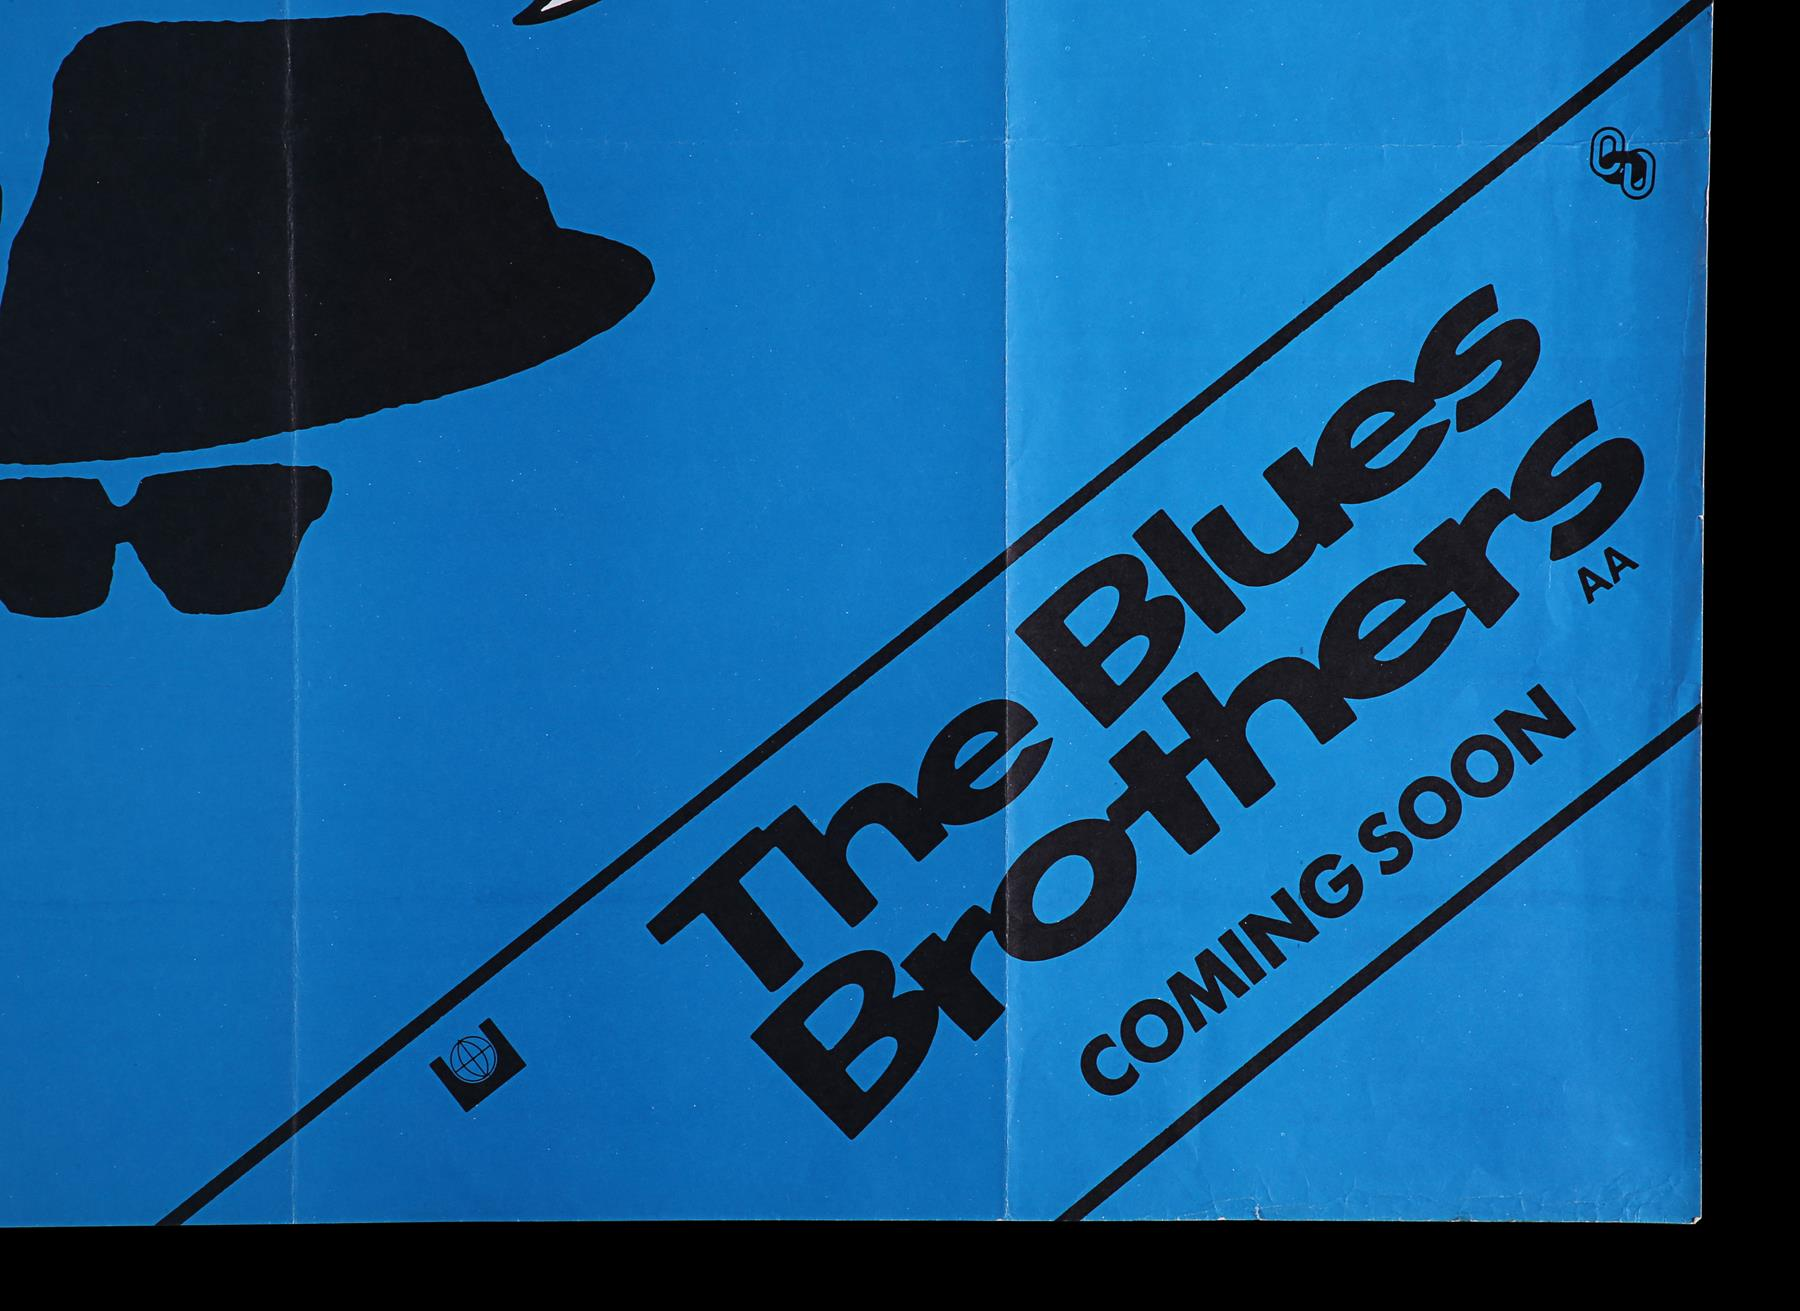 THE BLUES BROTHERS (1980) - UK Quad, 1980 - Image 4 of 6